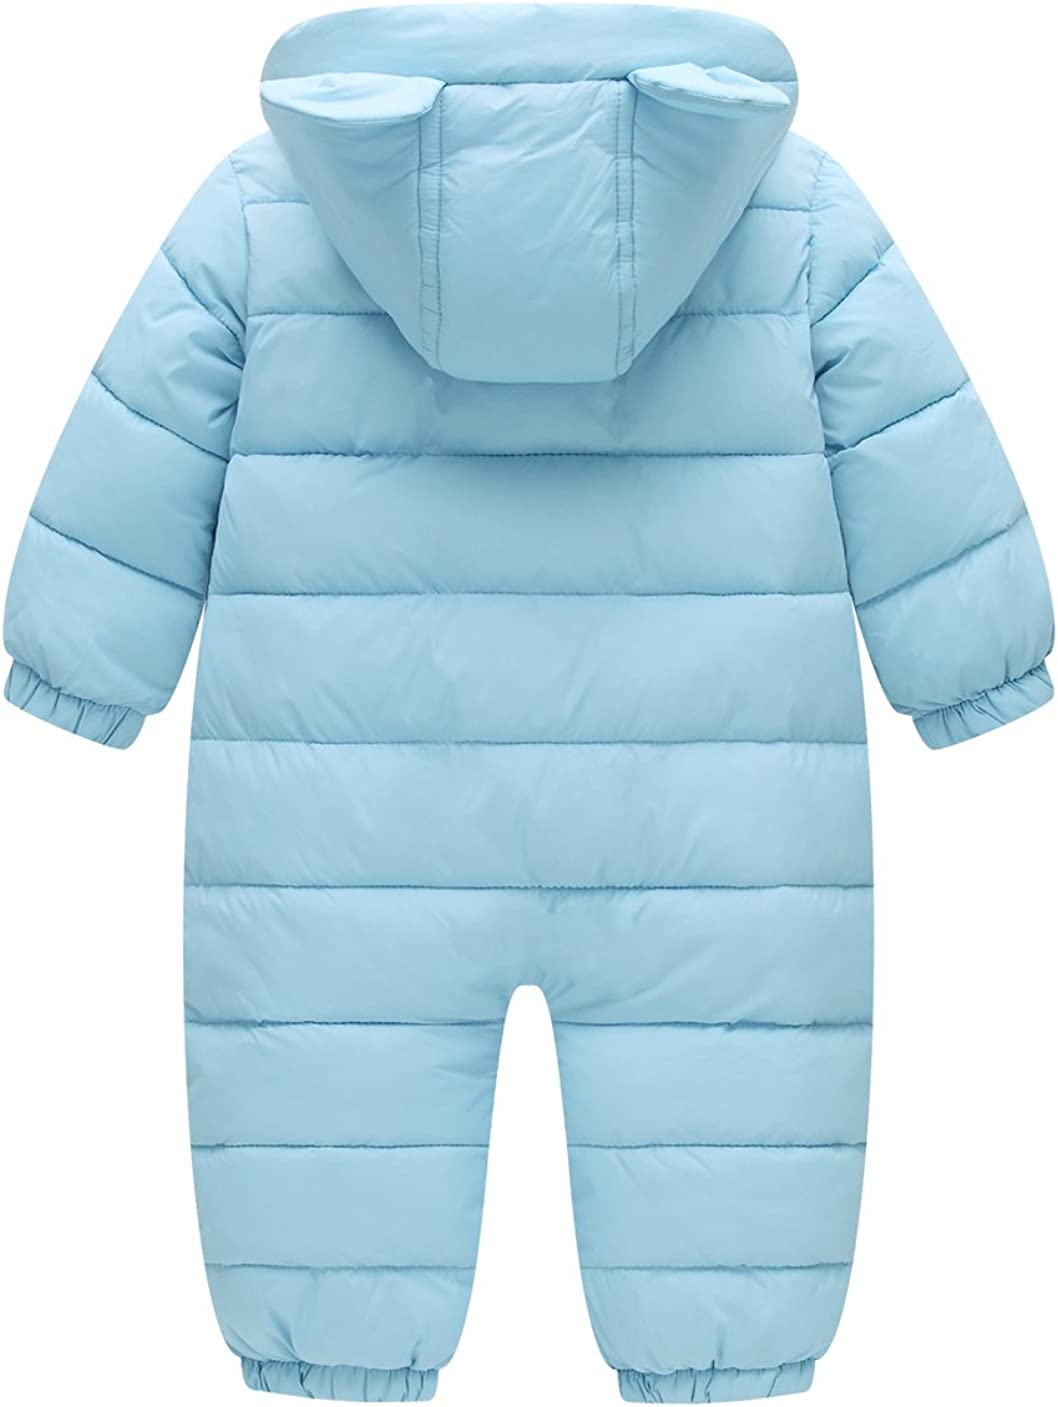 2 Pcs Baby Boy Girl Snowsuit Windproof Round Neck Down Jacket Snow Puffer Down Pants